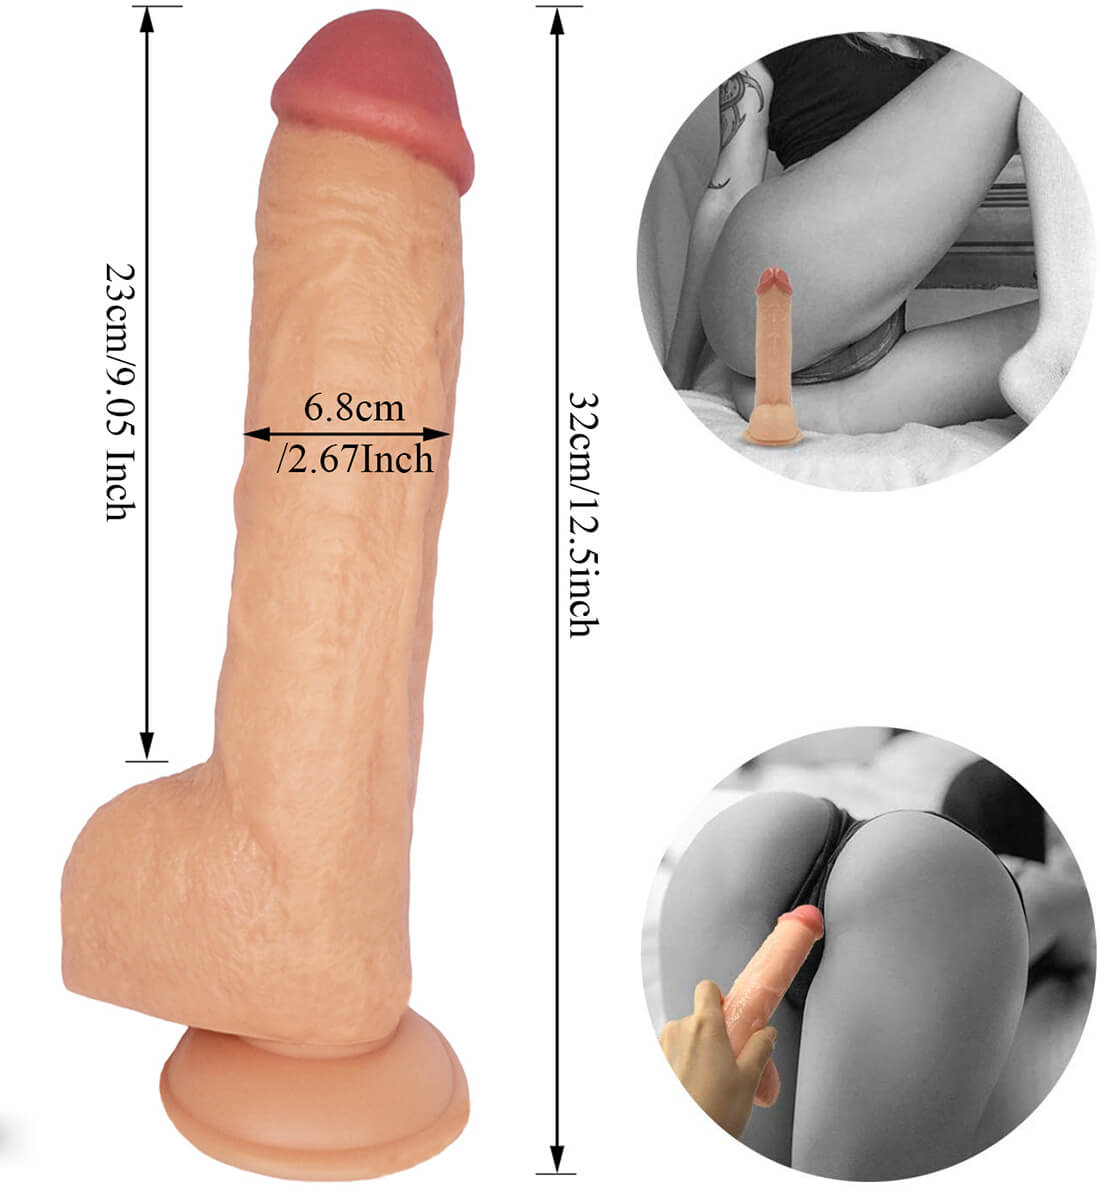 RStrap On 12.5-Inch Realistic Dildo